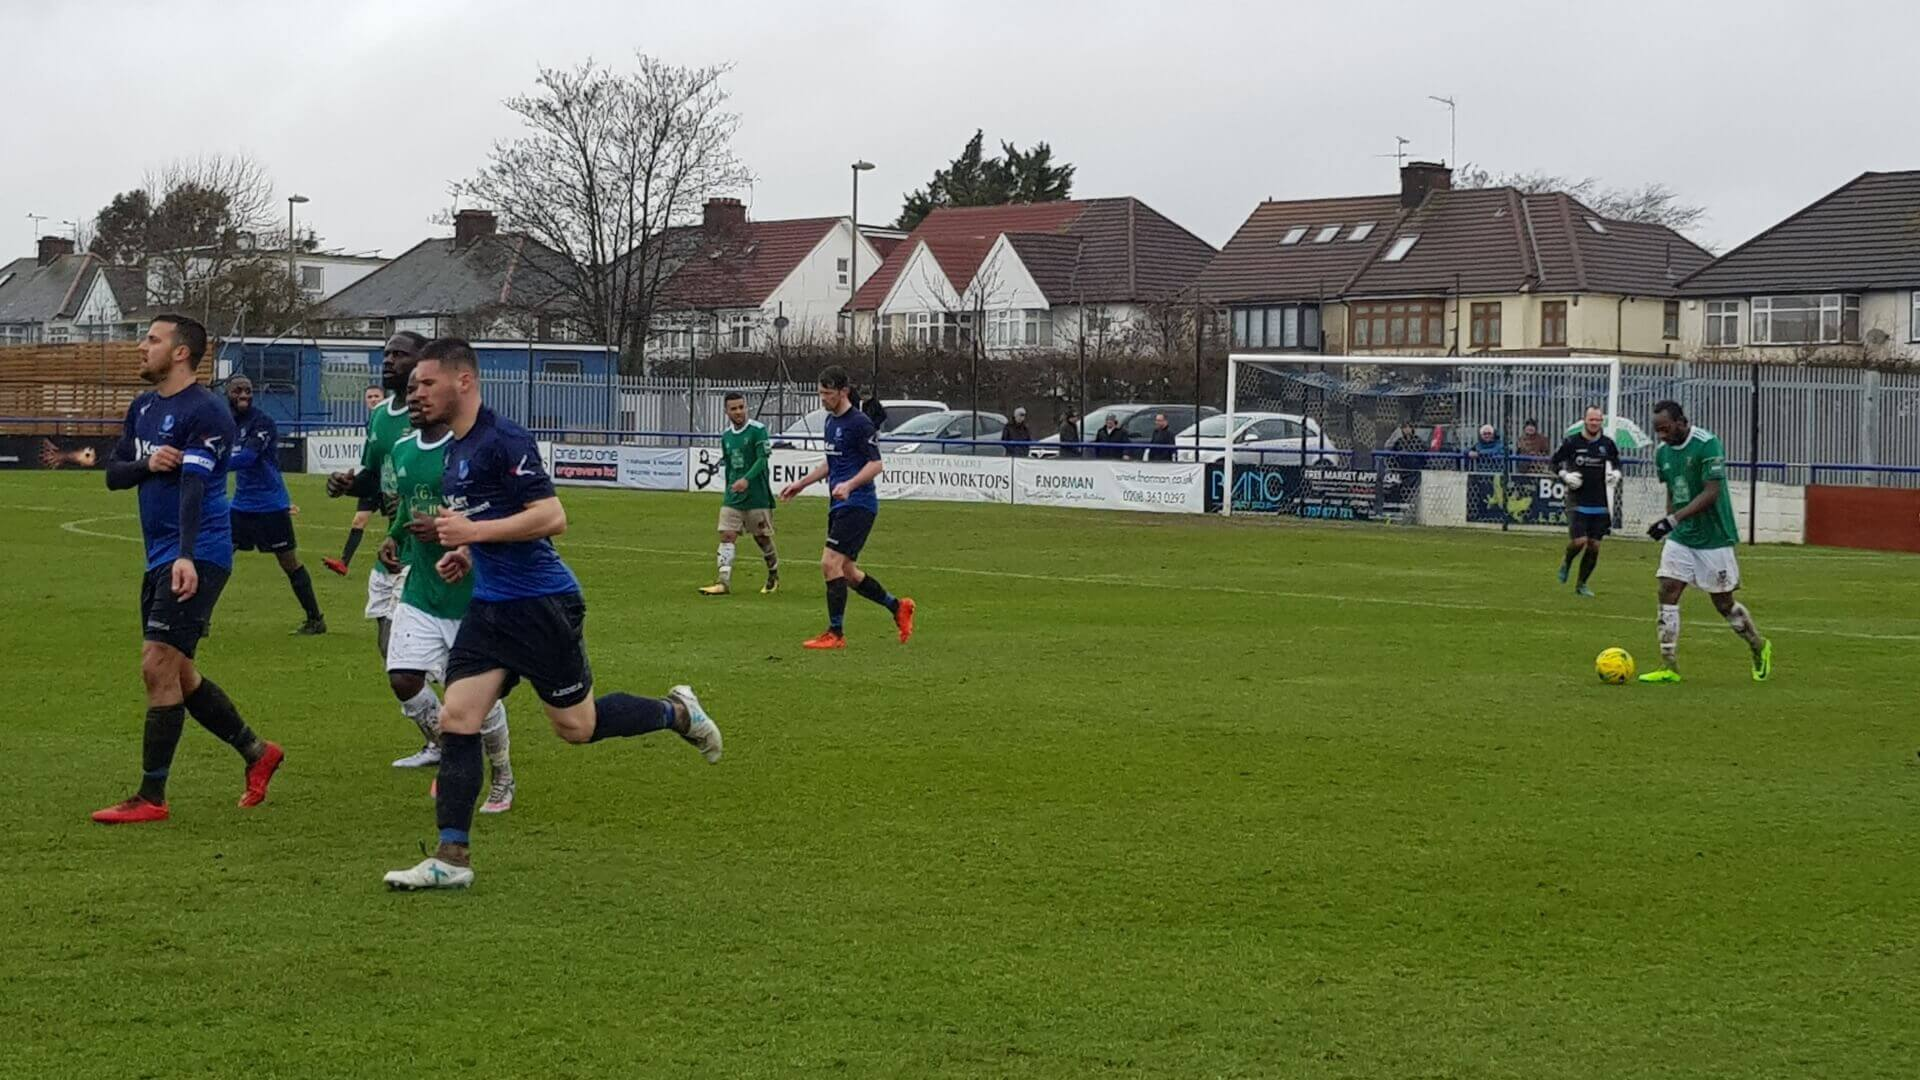 cmptours wingate & finchley vs hendon